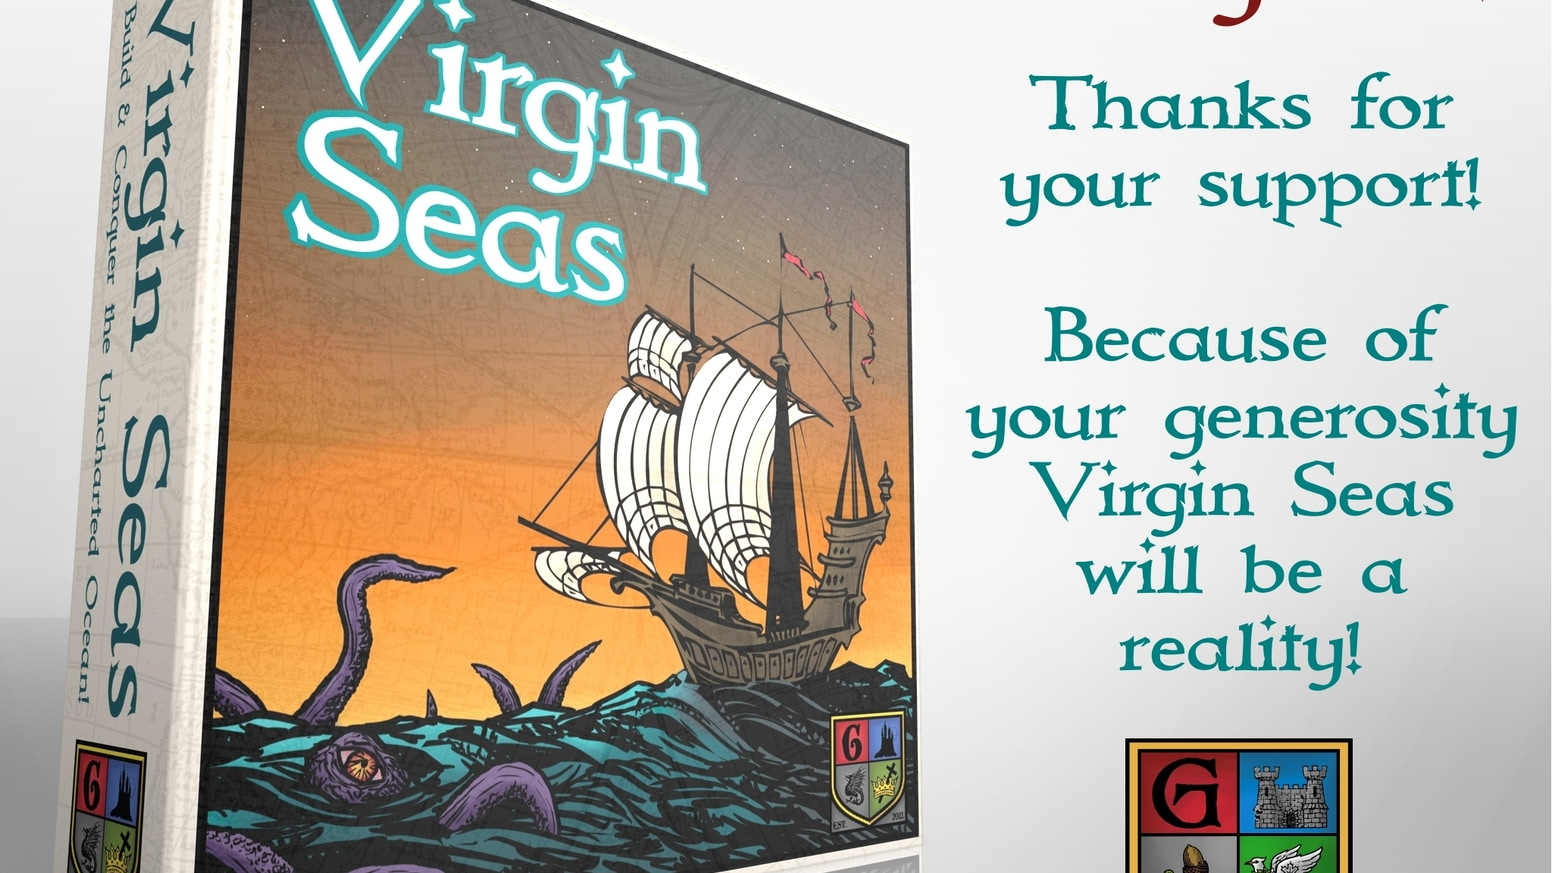 Come on a voyage with us in the Virgin Seas in this quick 2-4 player tile-laying area control game! NOW WITH SHIP MEEPLES!